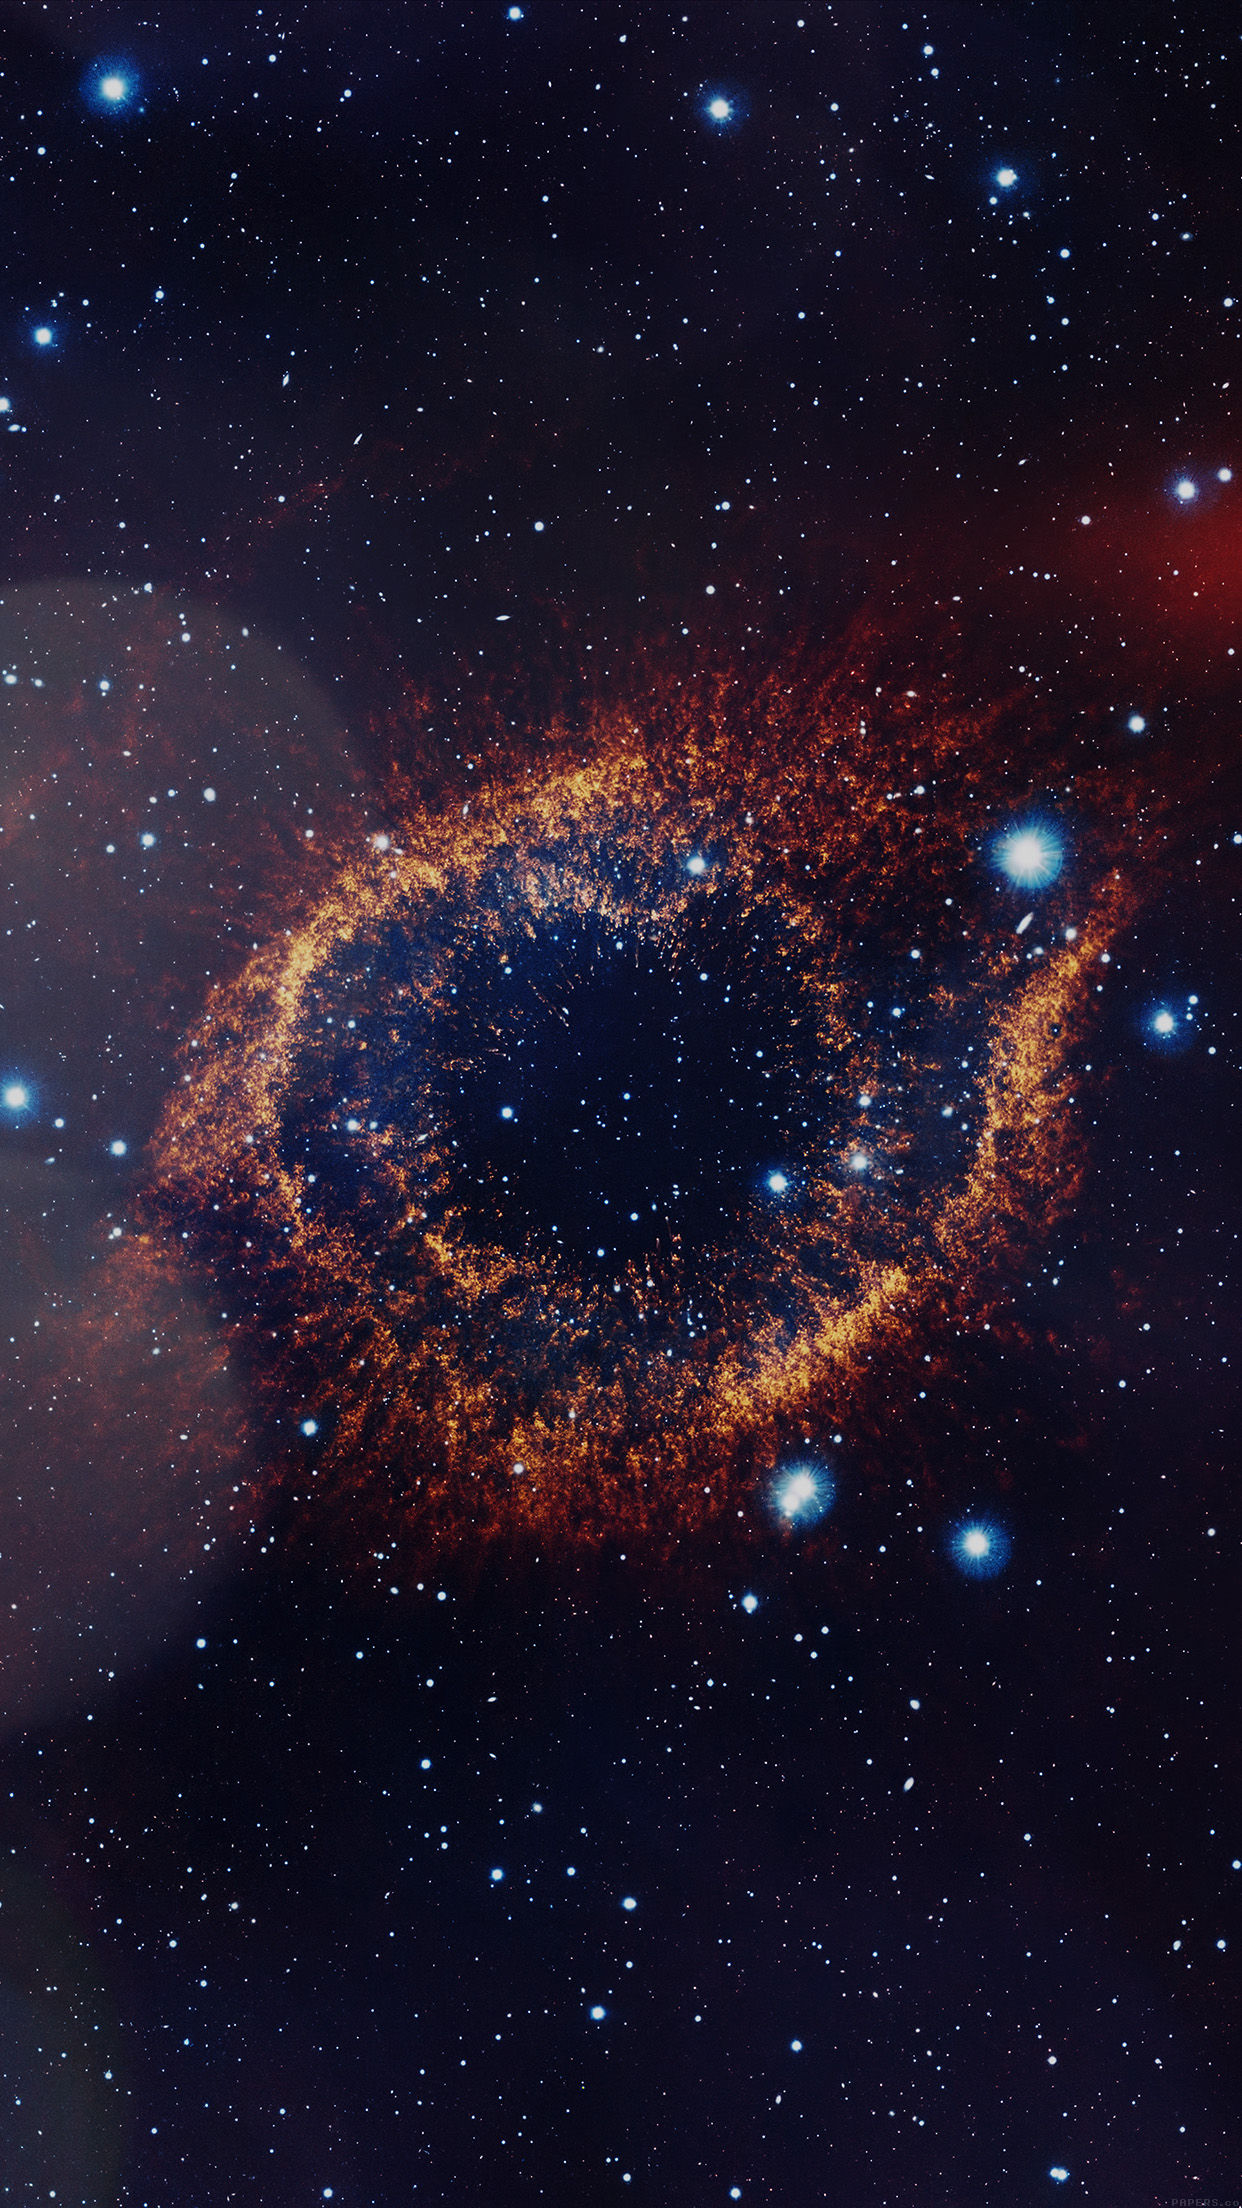 New Apple Wallpapers Iphone 7 Papers Co Iphone Wallpaper Mo22 Eye Of Space Star